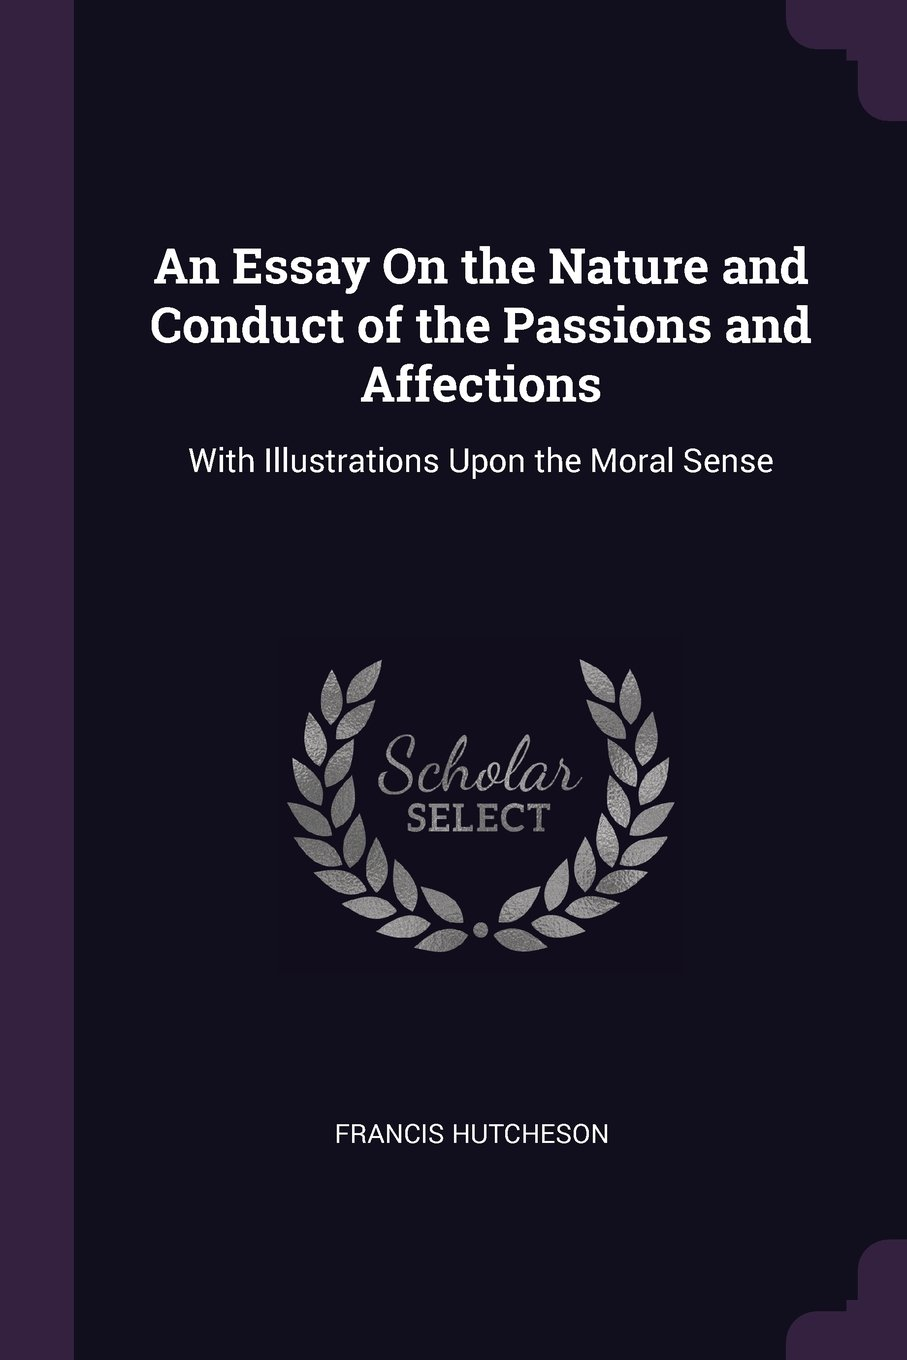 An Essay On the Nature and Conduct of the Passions and Affections: With Illustrations Upon the Moral Sense PDF